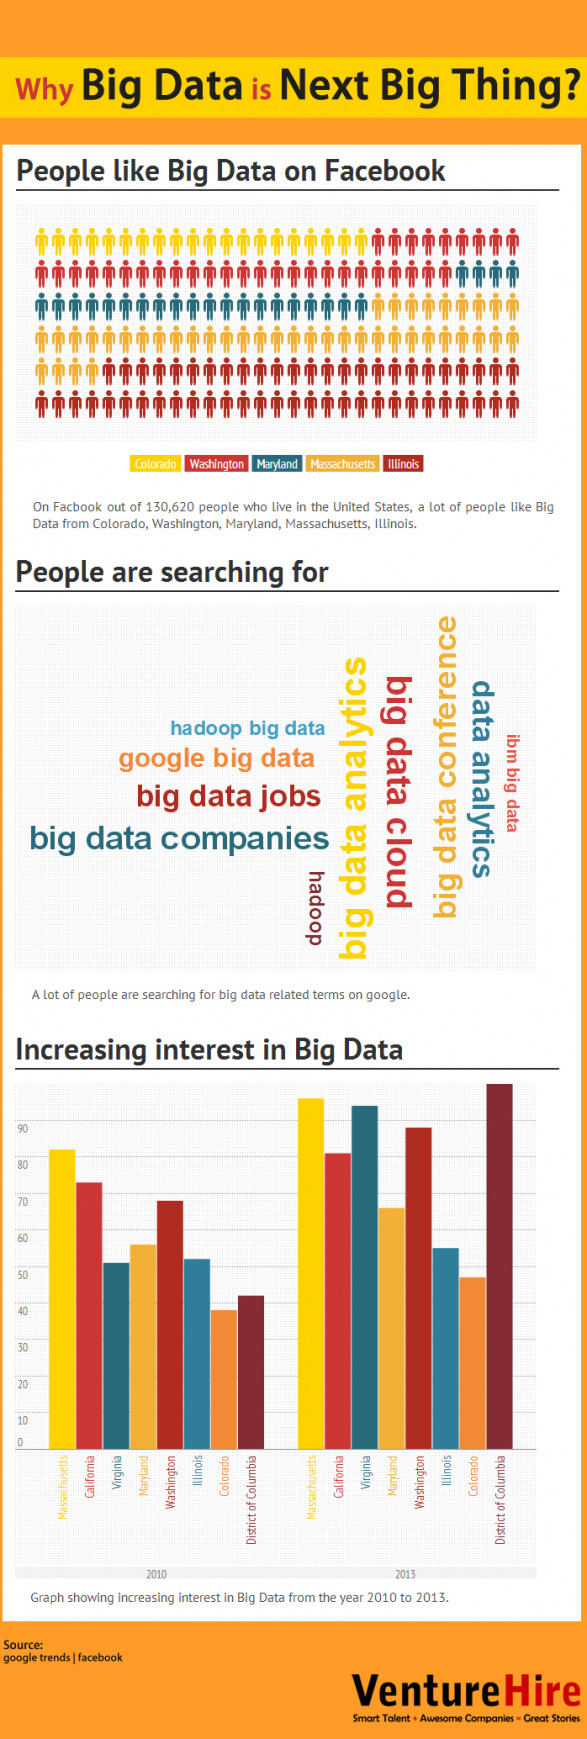 Why Big Data is Next Big Thing?